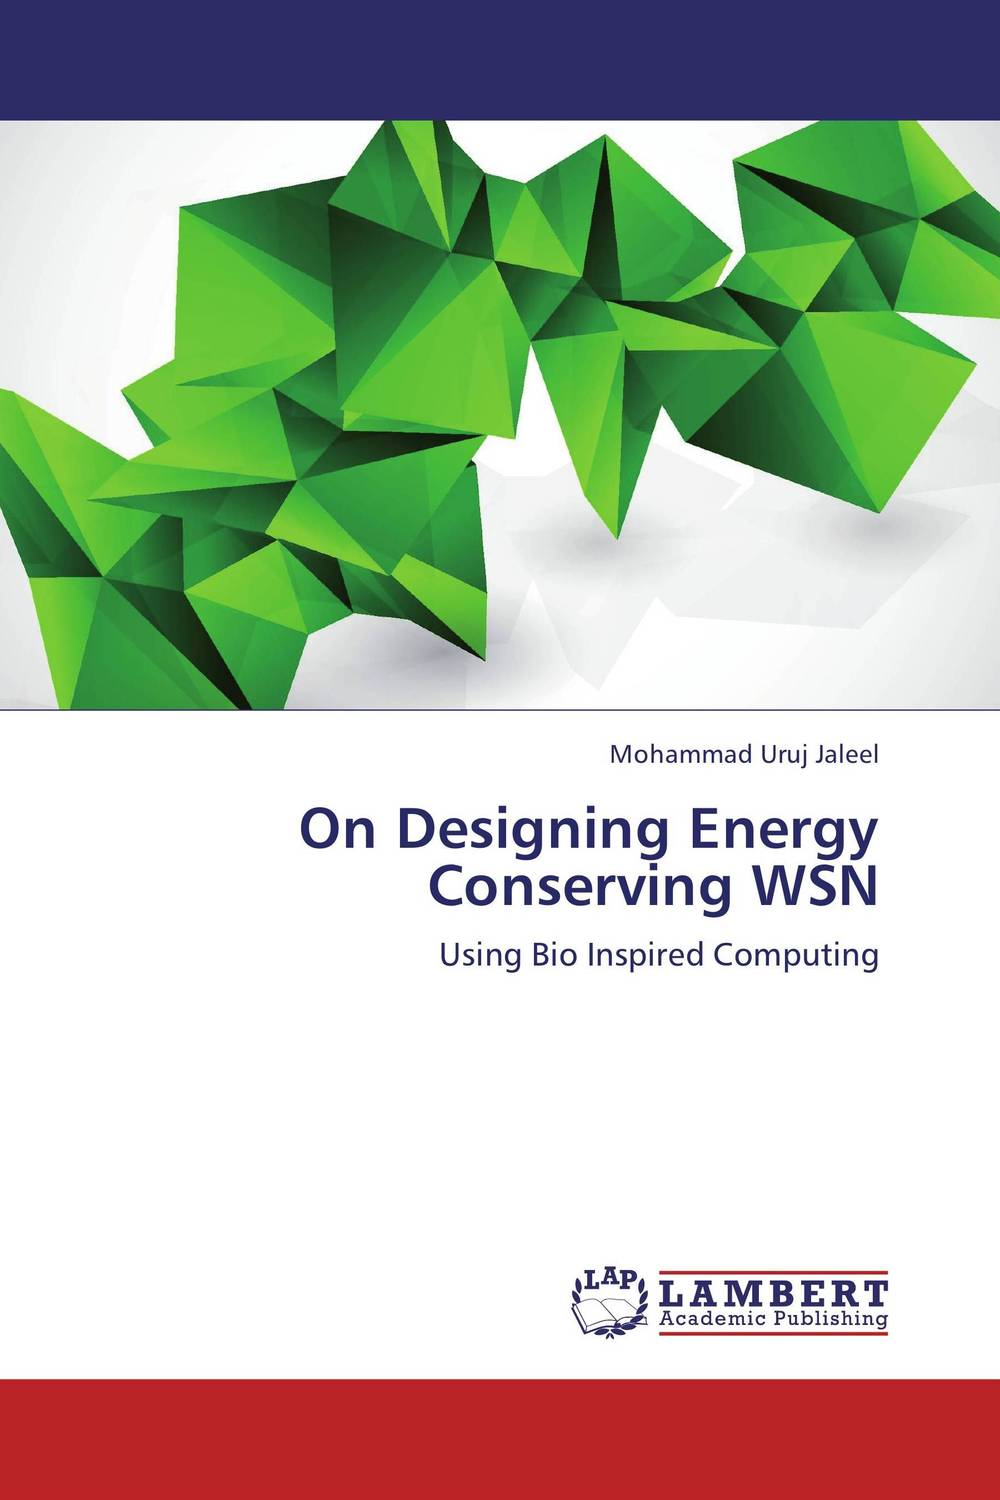 On Designing Energy Conserving WSN dynamic biological networks – stomatogast